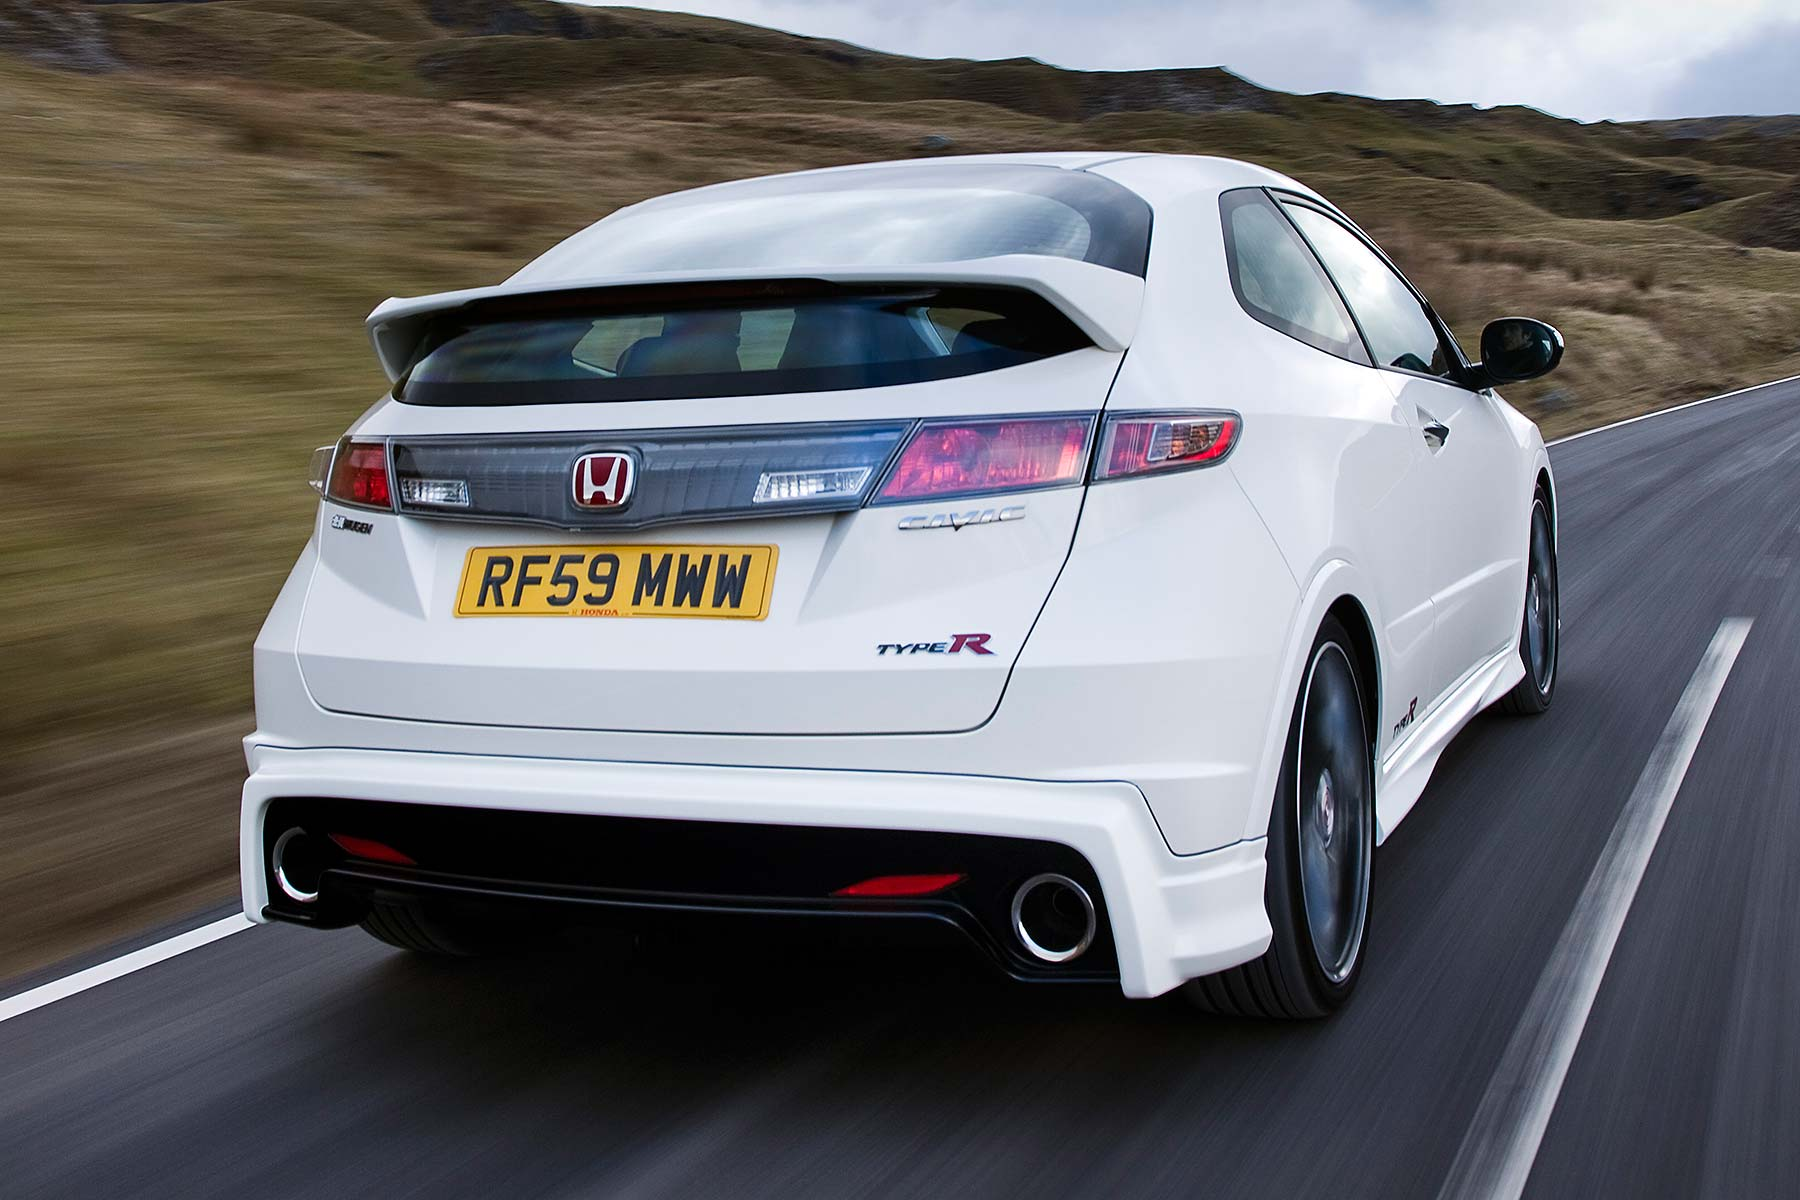 honda civic type r is this summer 39 s hottest used car. Black Bedroom Furniture Sets. Home Design Ideas